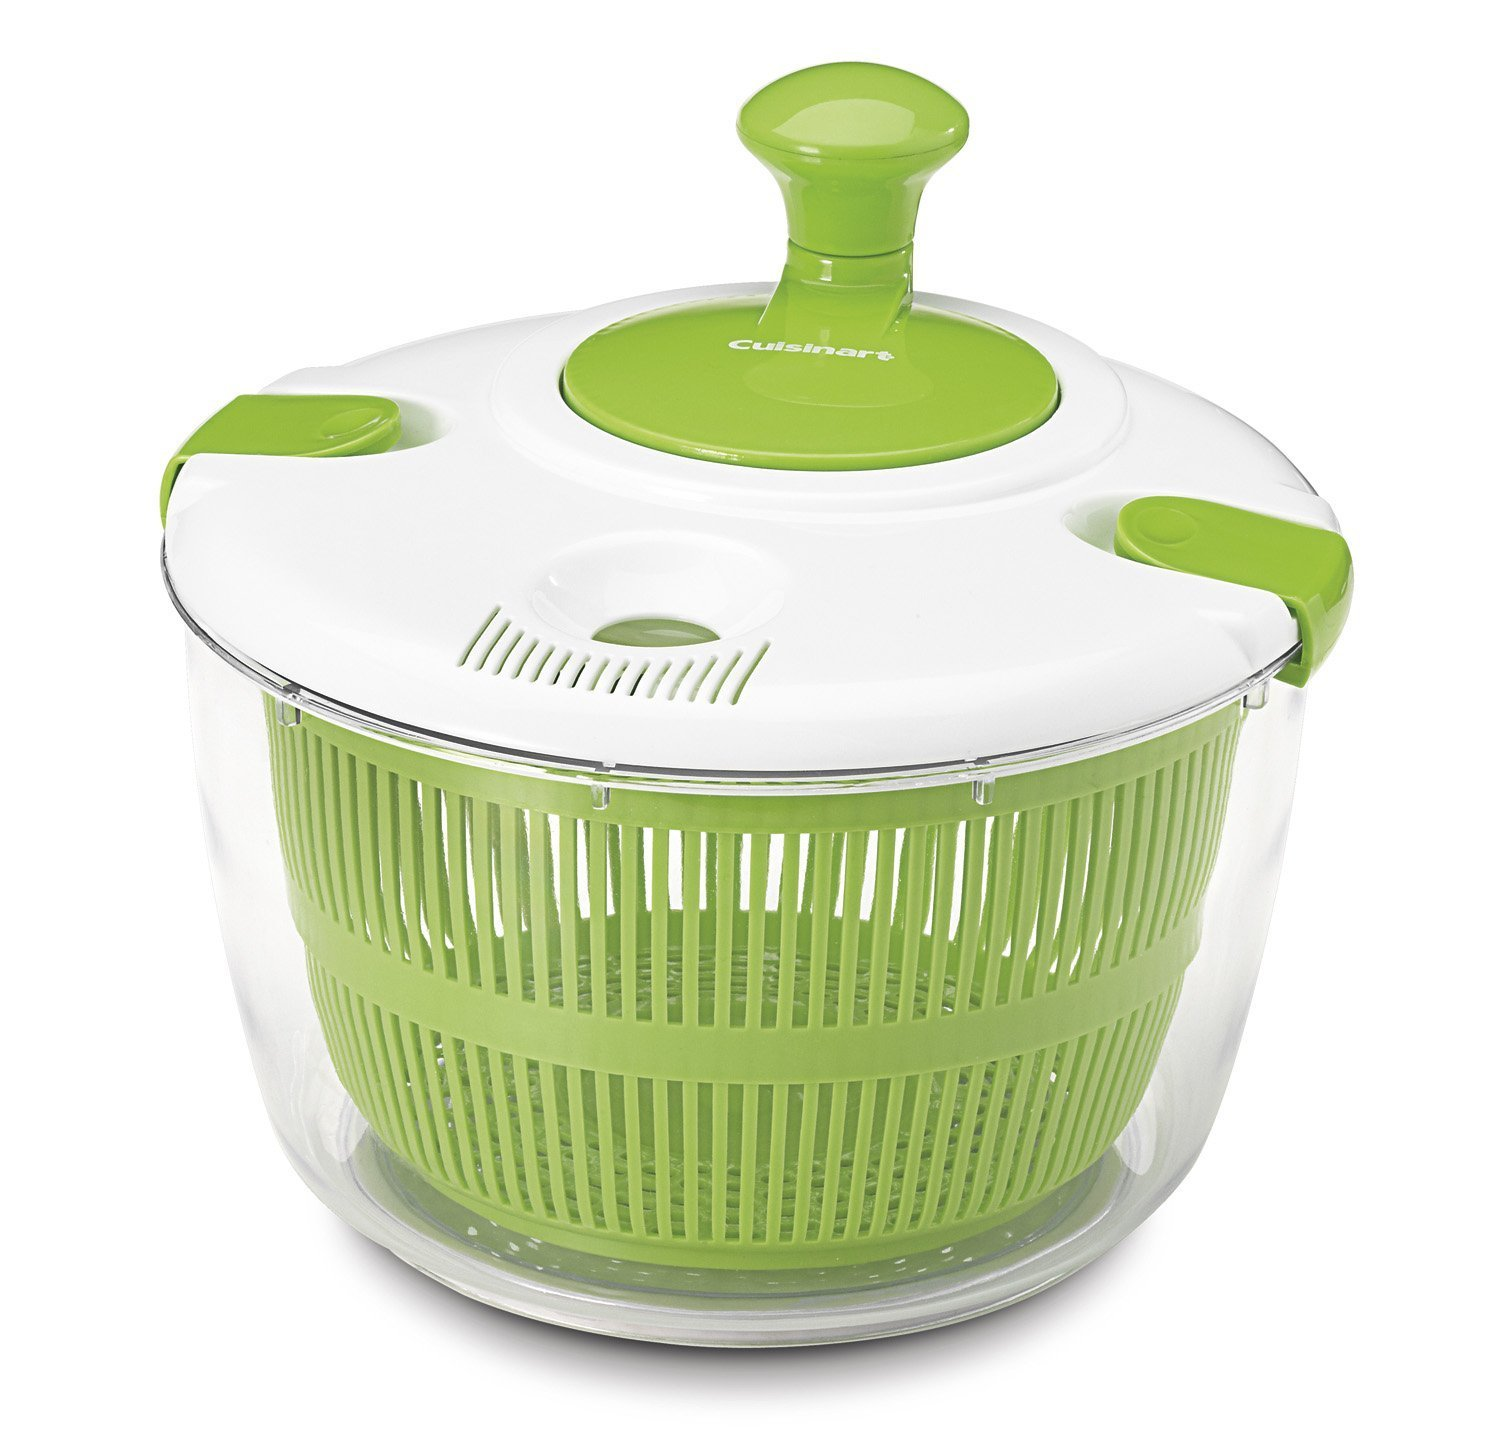 BenchMart Large Salad Spinner - 5L Capacity & BPA Free Collapsible Vegetable Dryer with Clear Bowl, Unique Pause Button, Colander Basket Insert, Dry Off & Drain Lettuce and Vegetable With Ease and Faster Food Prep - Ideal Gadget for all Kitchen Lov